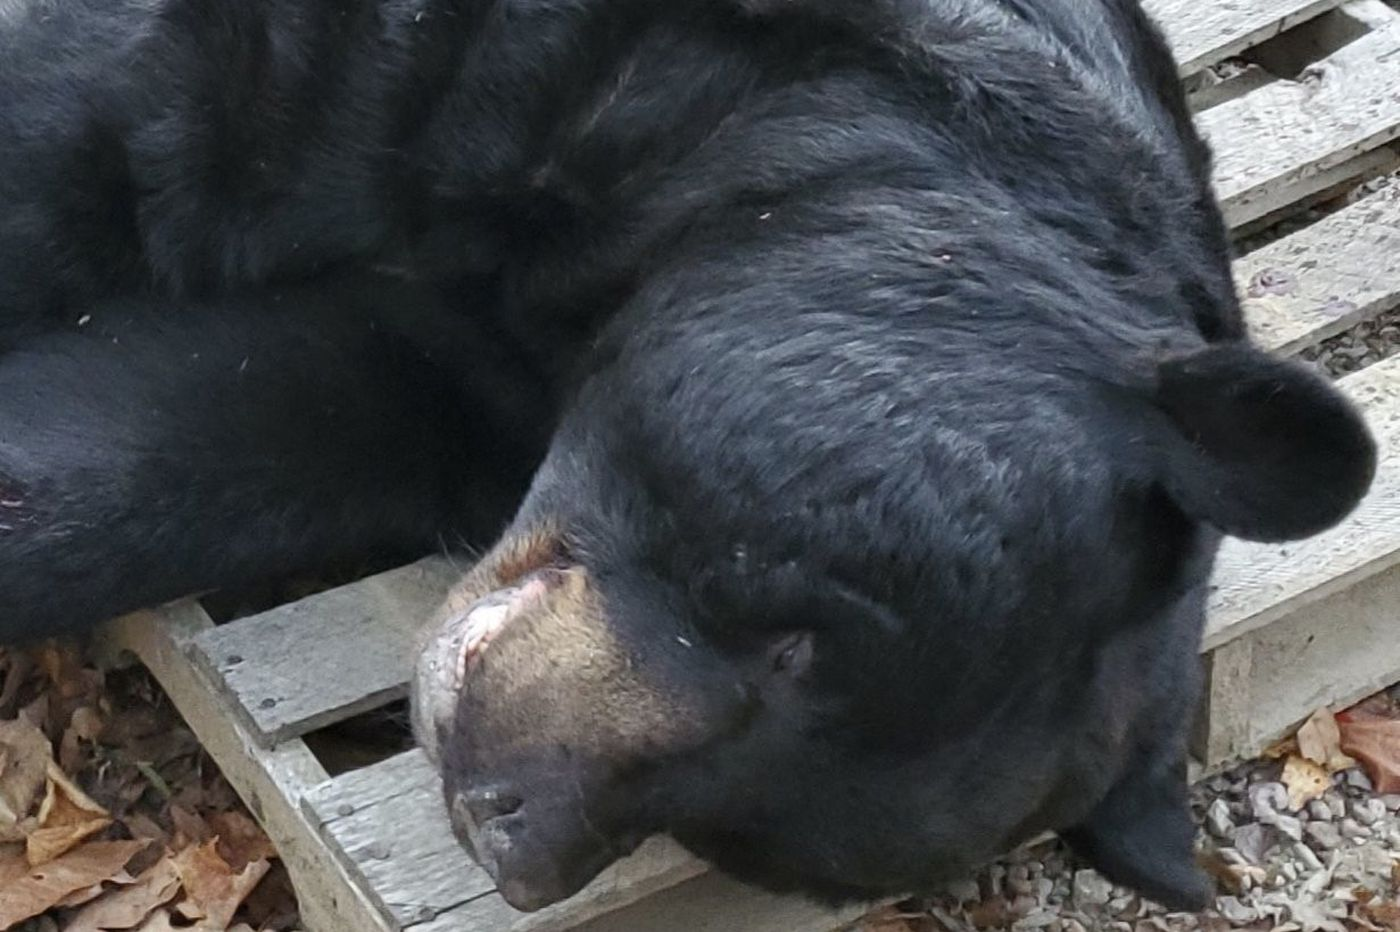 At 700 pounds, black bear killed in New Jersey sets world record, says national hunting group